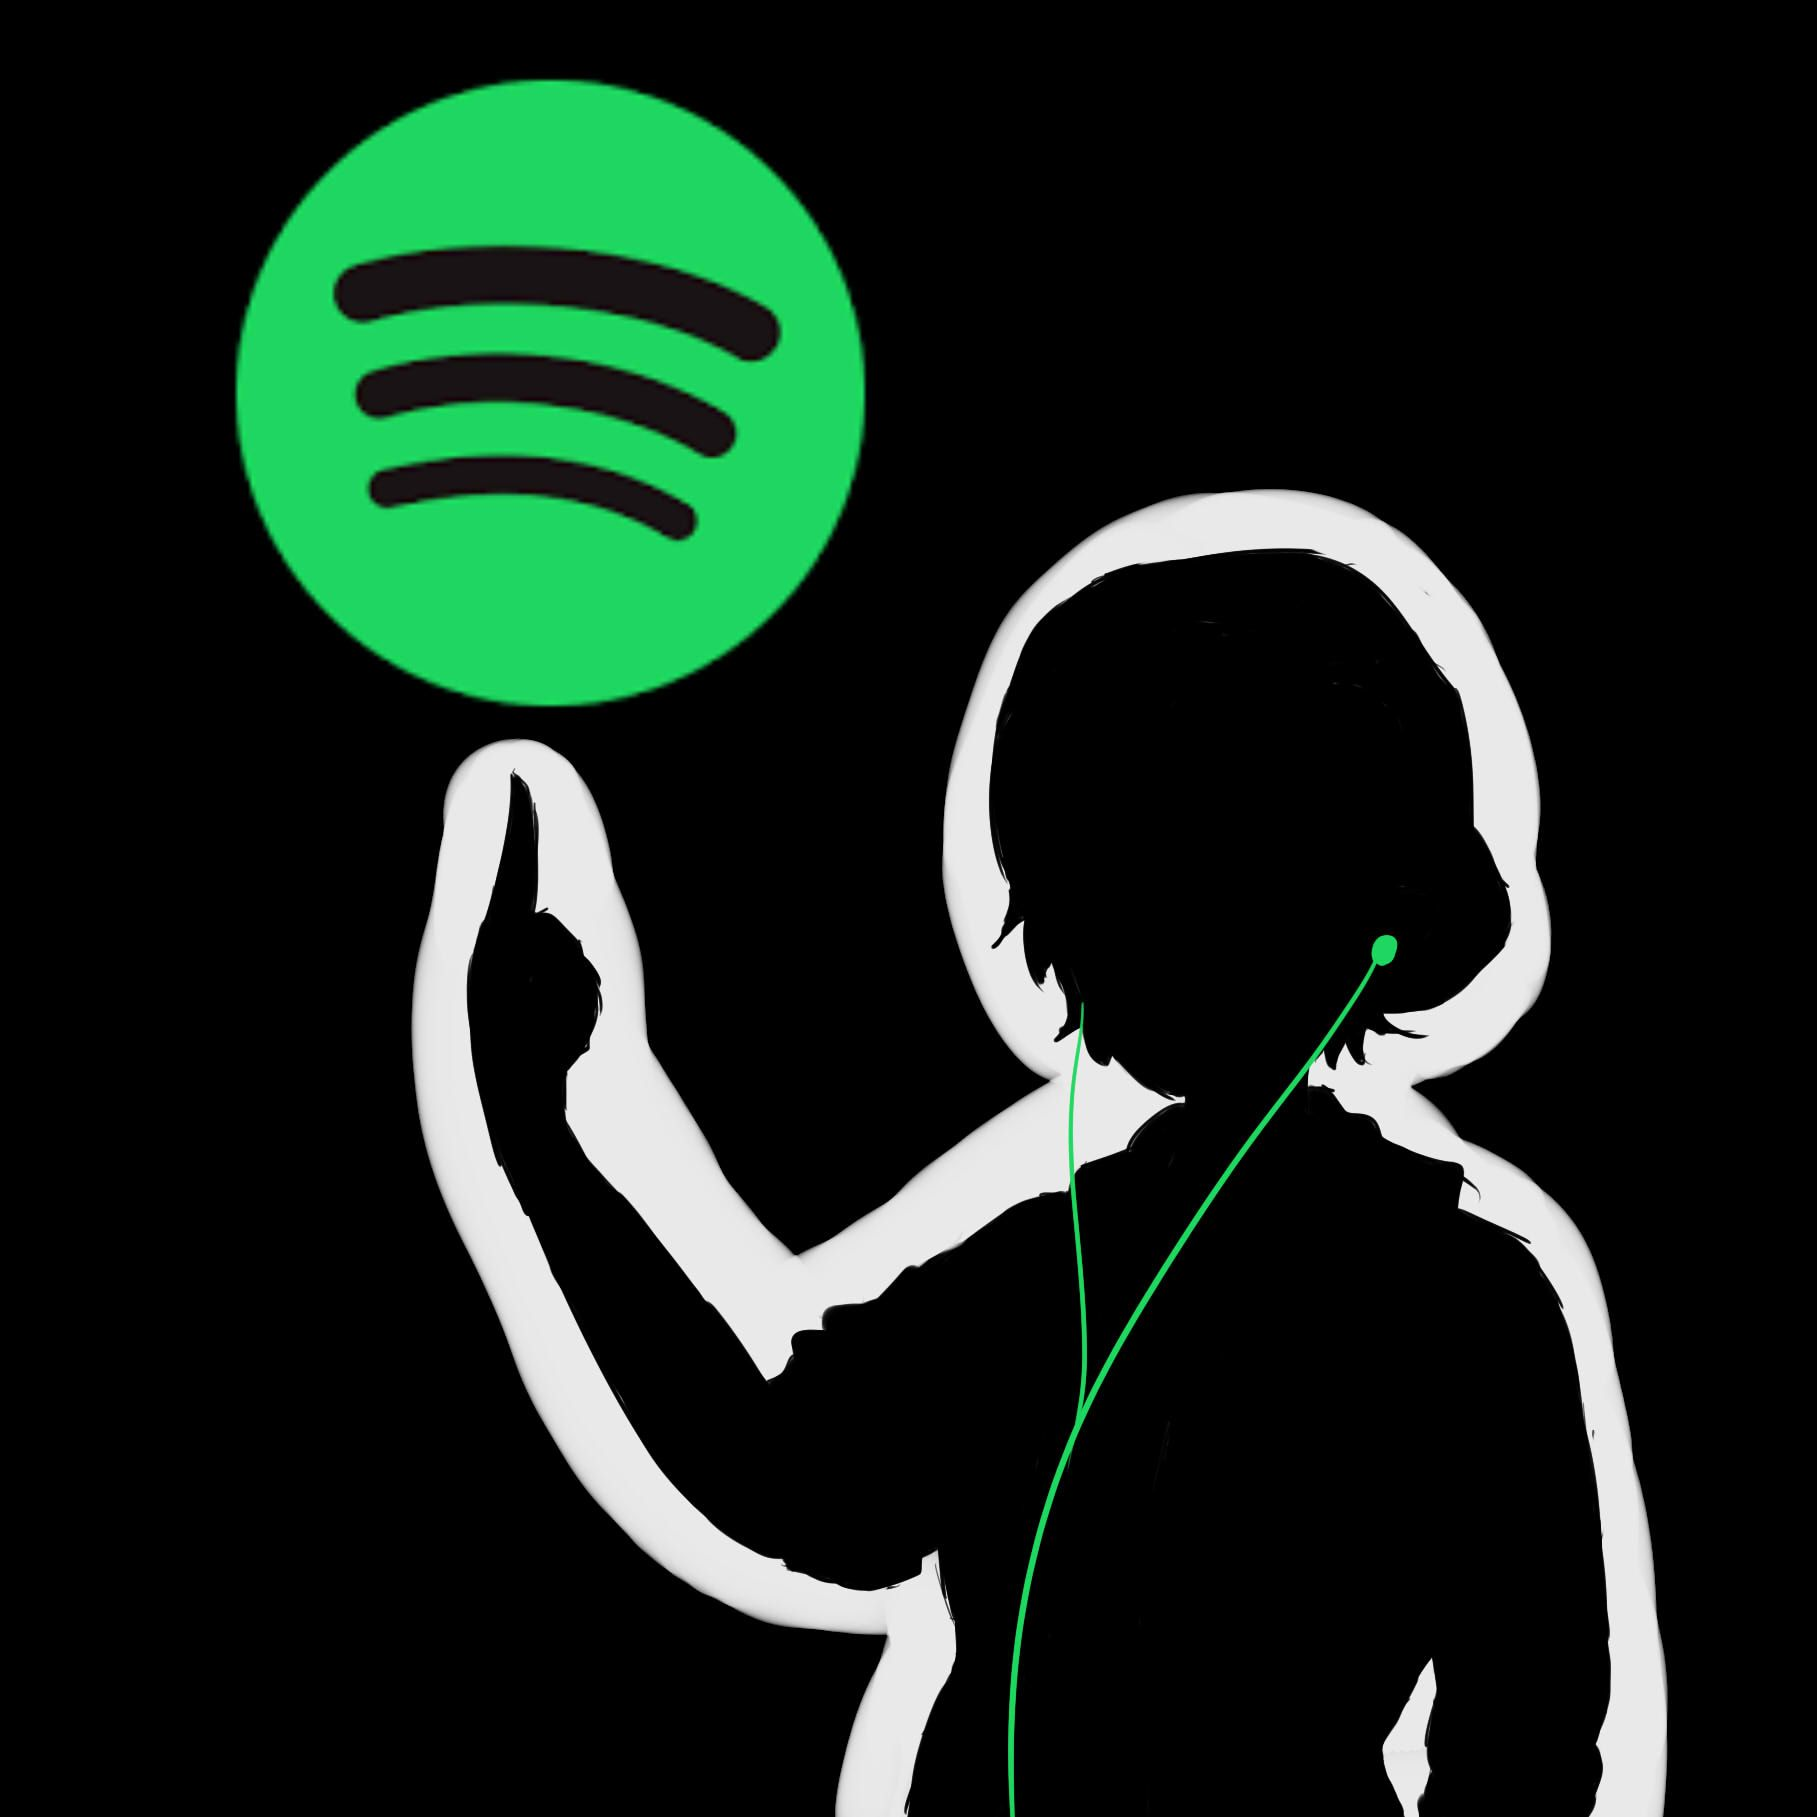 Like my music? Follow me on Spotify (kitkatay00) for more